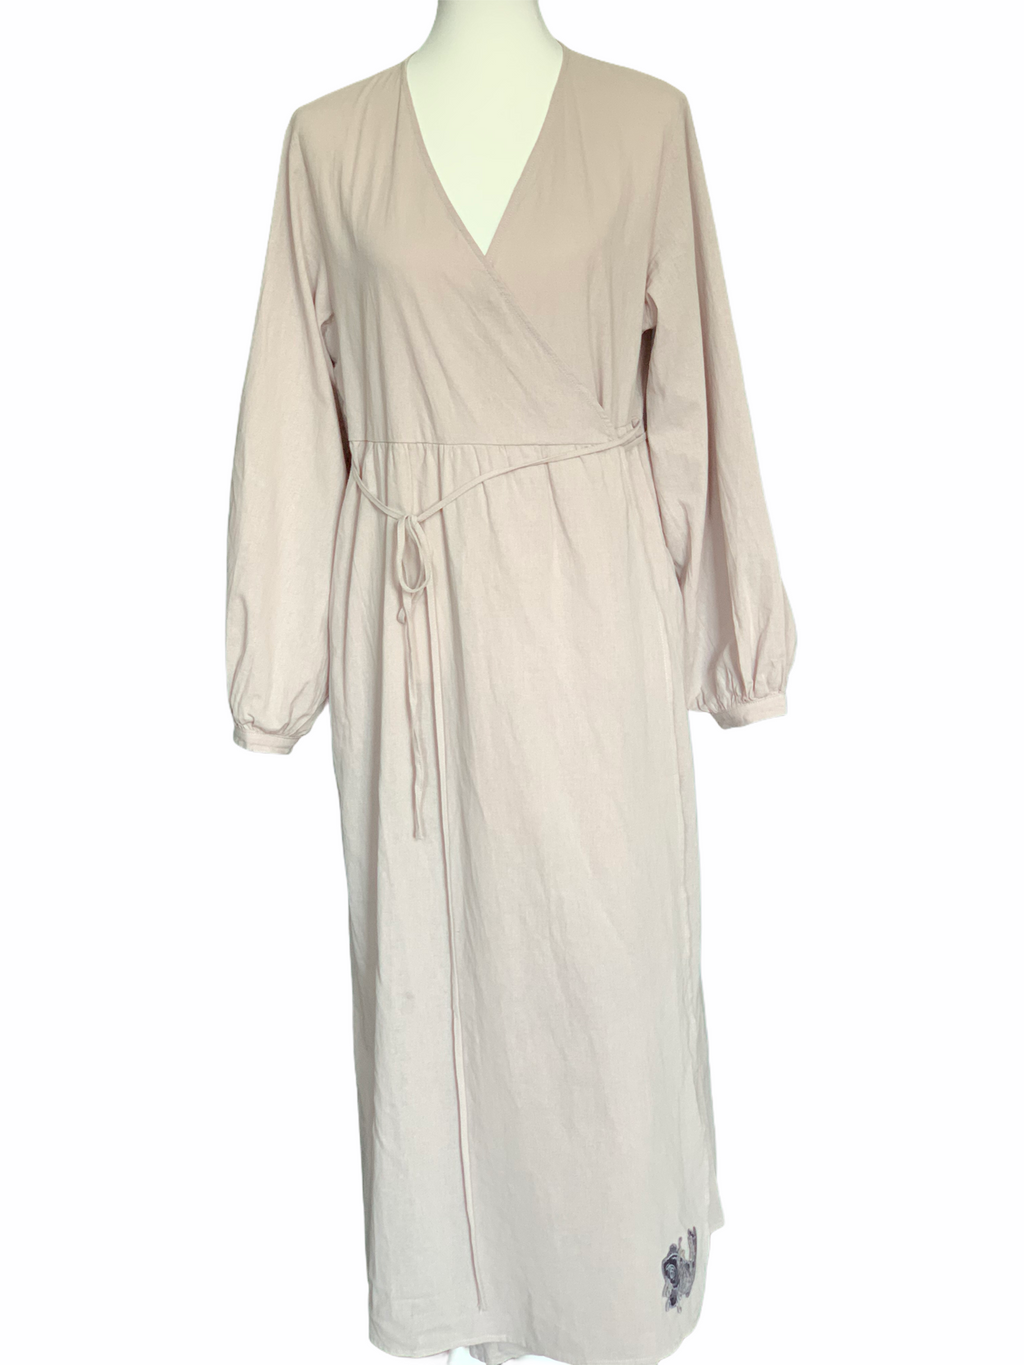 YAKRIS dress 'Season Between' made of cotton in a slightly creased look, gray-beige